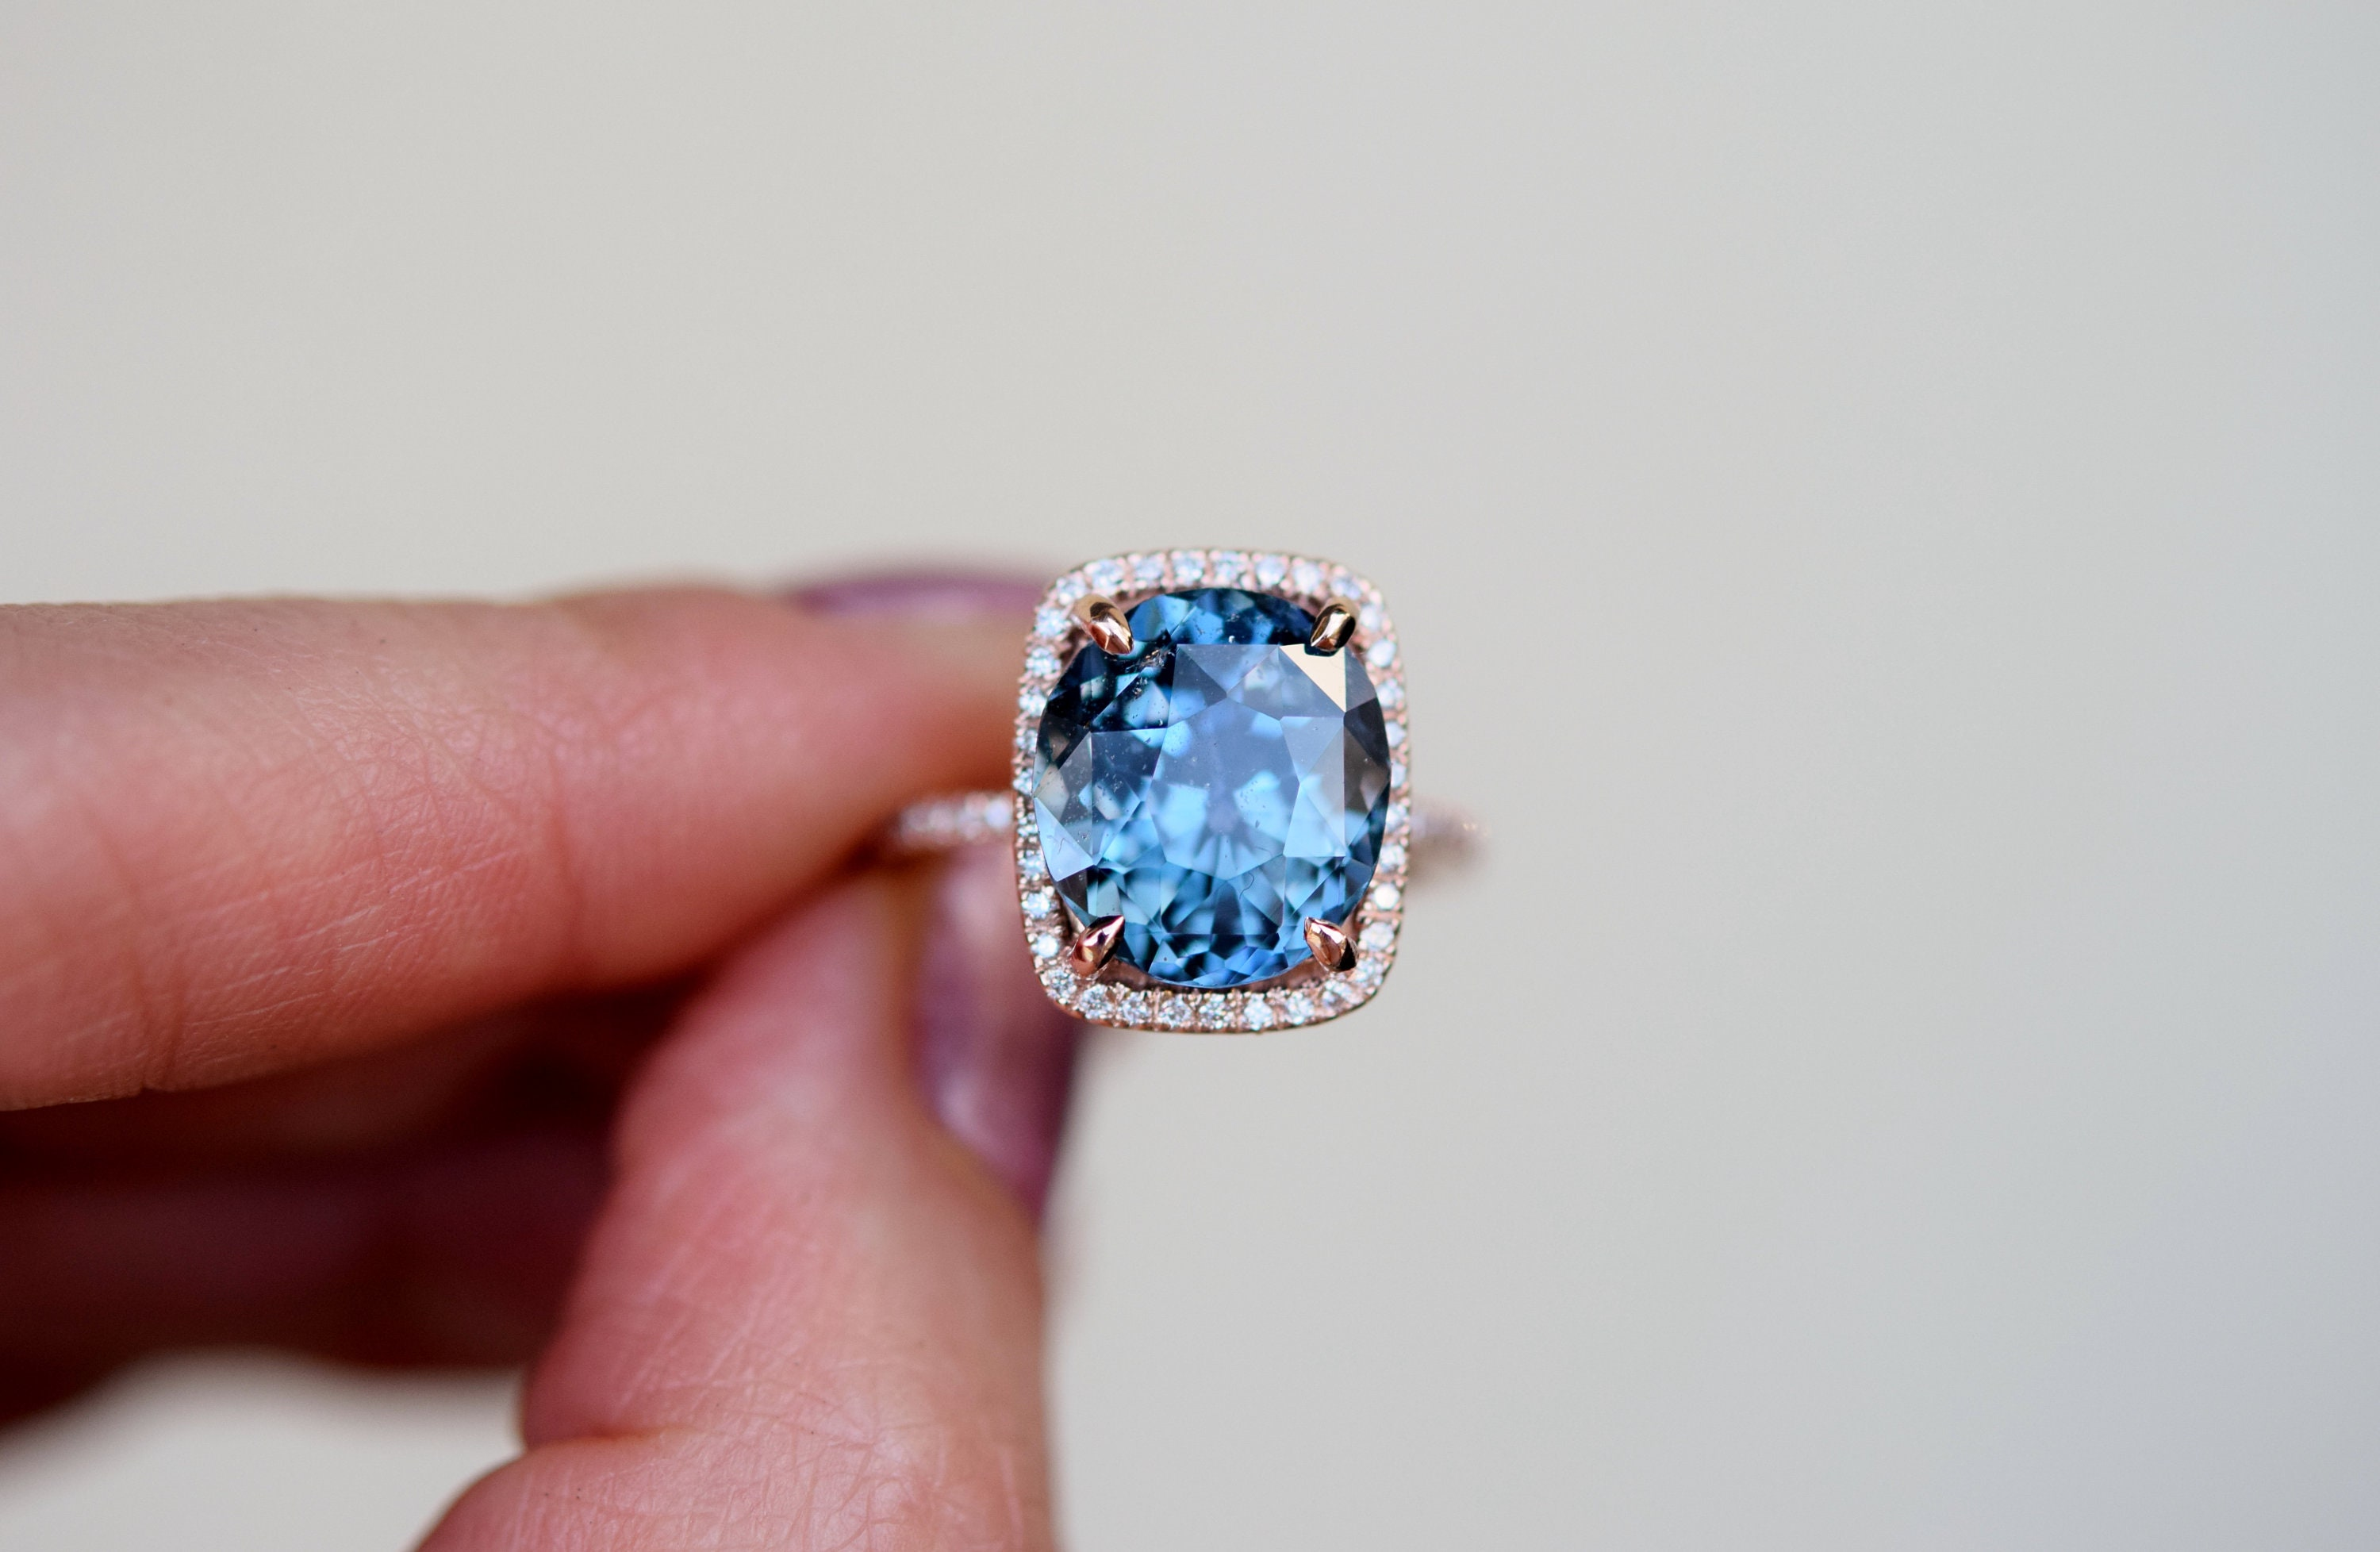 photo internally for blue largest green rare by sell could millennium this million oval shows sotheby s provided auction time carat diamond sothebys beers a over at jewel flawless de